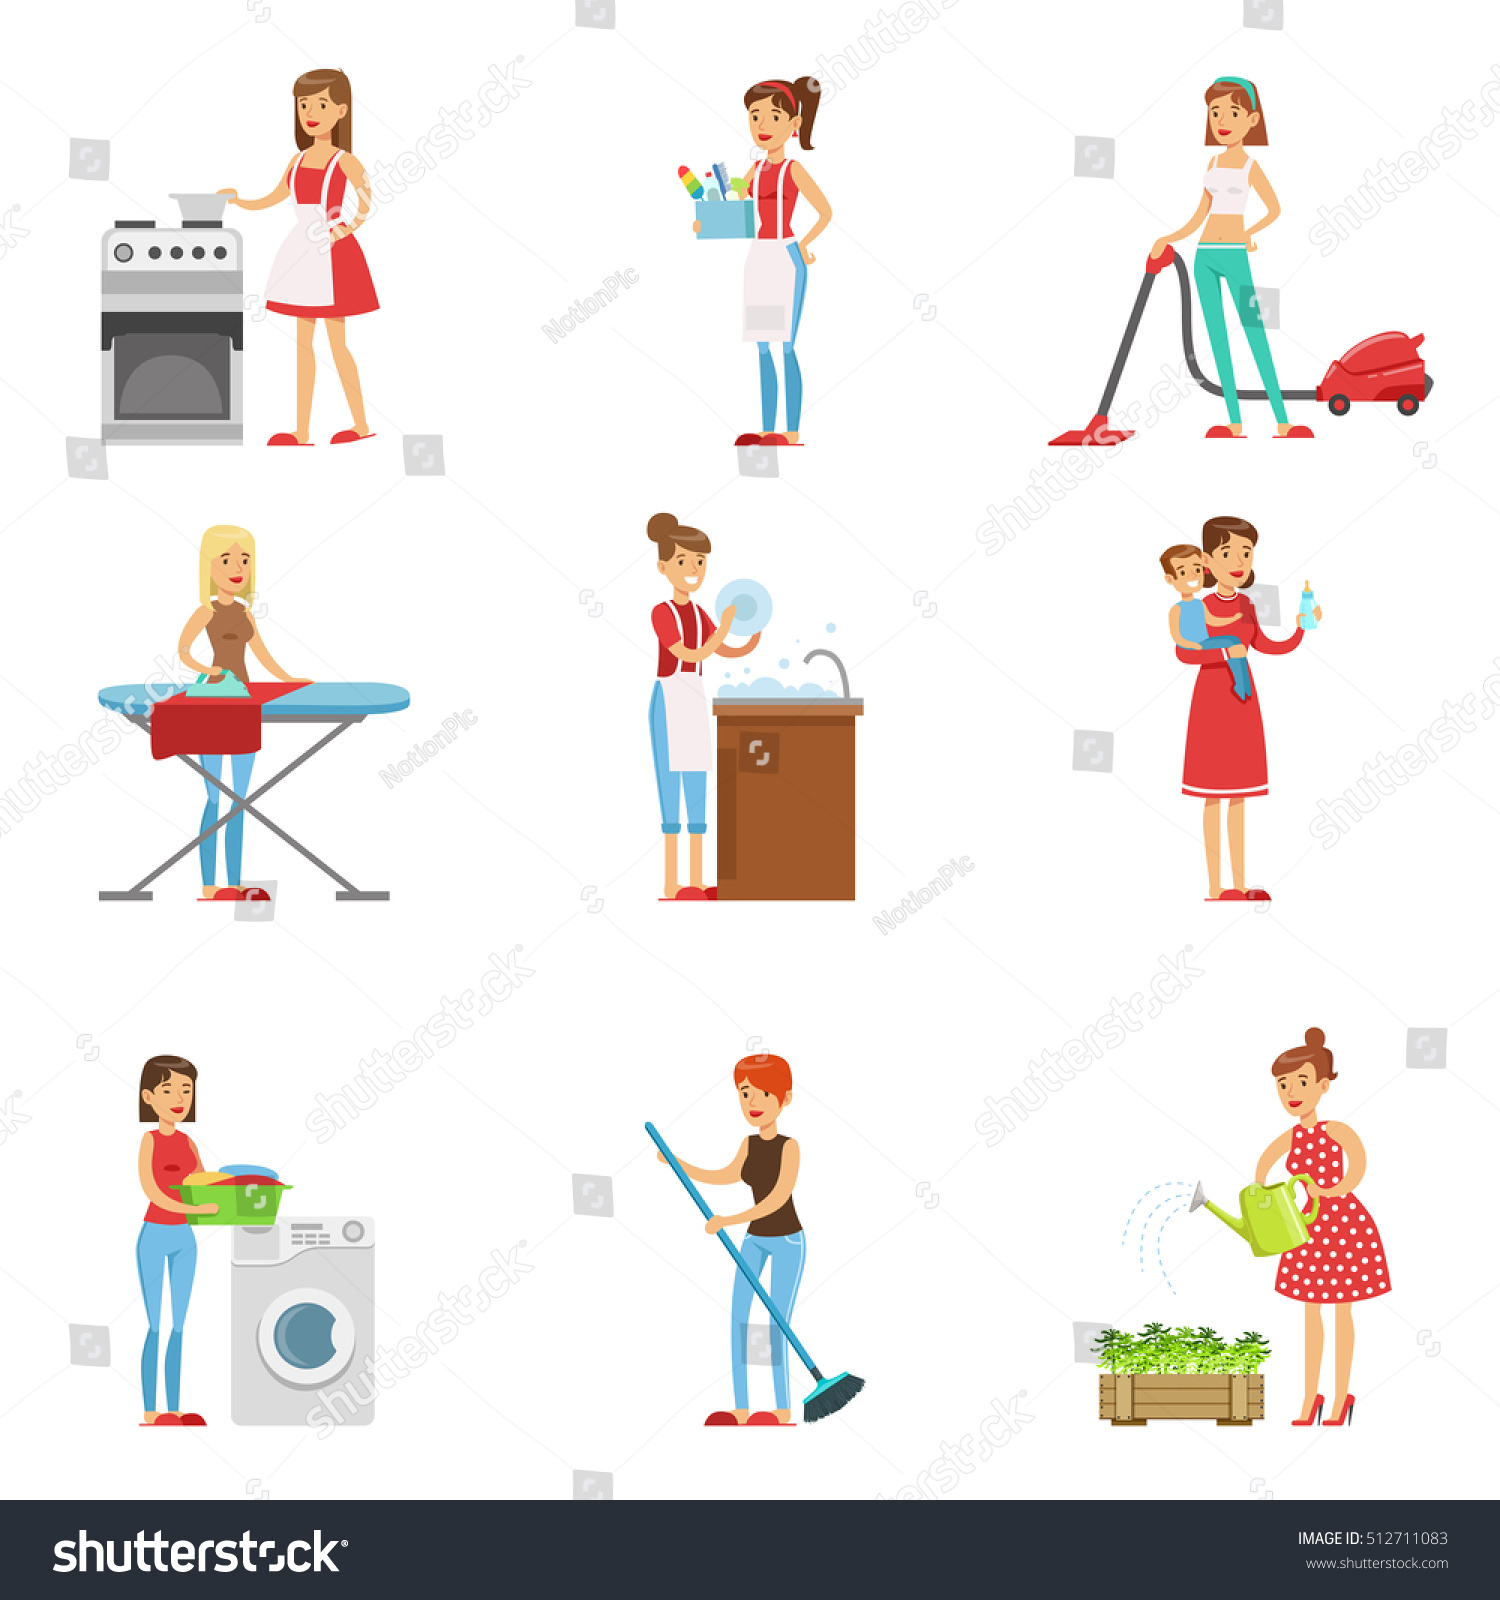 Happy Modern Housewives Cleaning And Housekeeping, Performing Different  Household Duties With A Smile  Housekeeping Duties